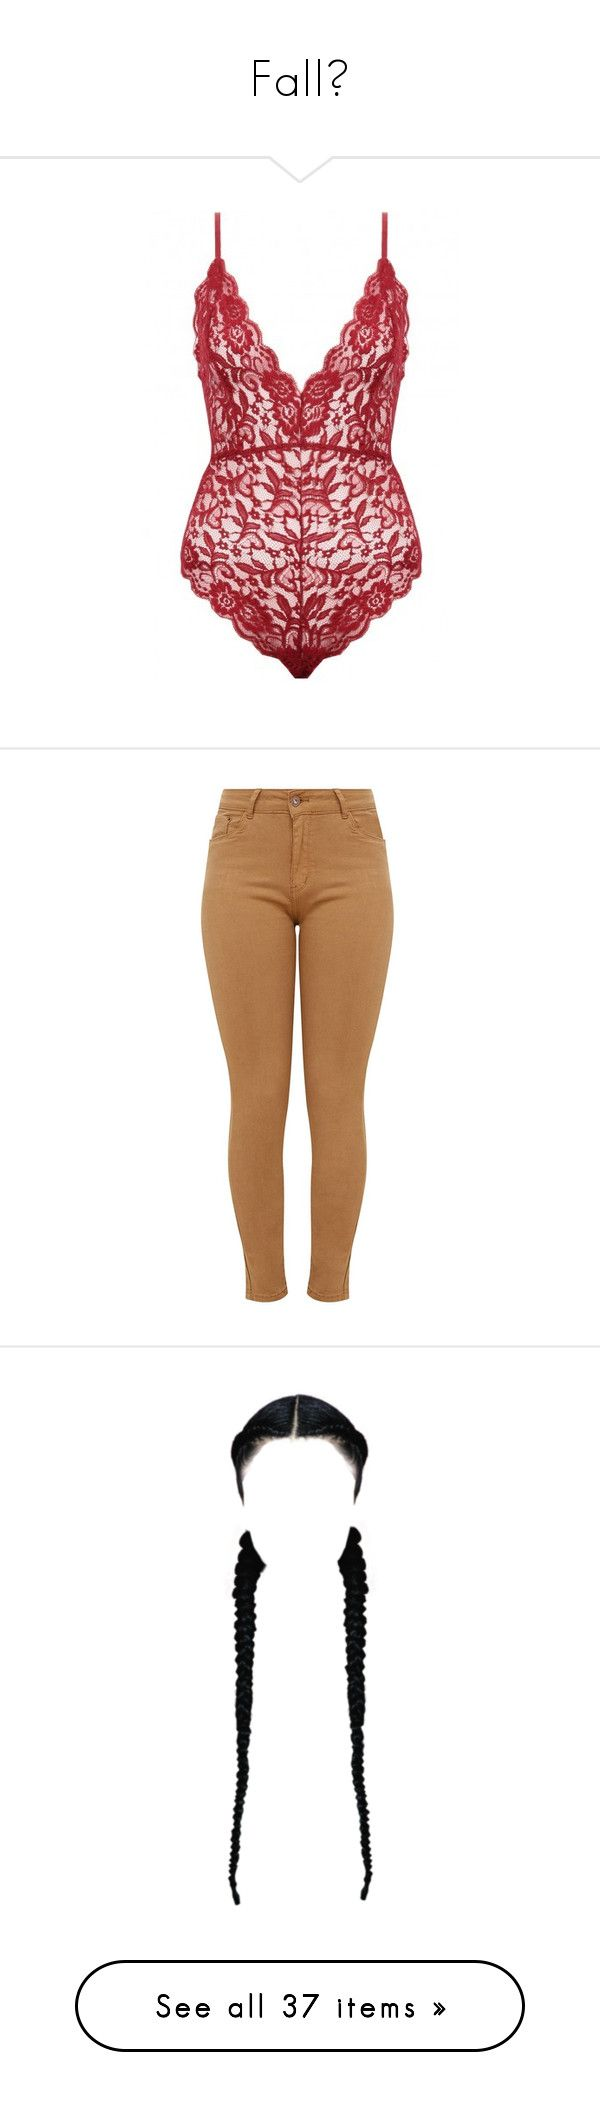 """Fall🍁"" by ilovetrey ❤ liked on Polyvore featuring intimates, shapewear, bodysuit, lingerie, underwear, jeans, bottoms, calças, pants and tan skinny jeans"